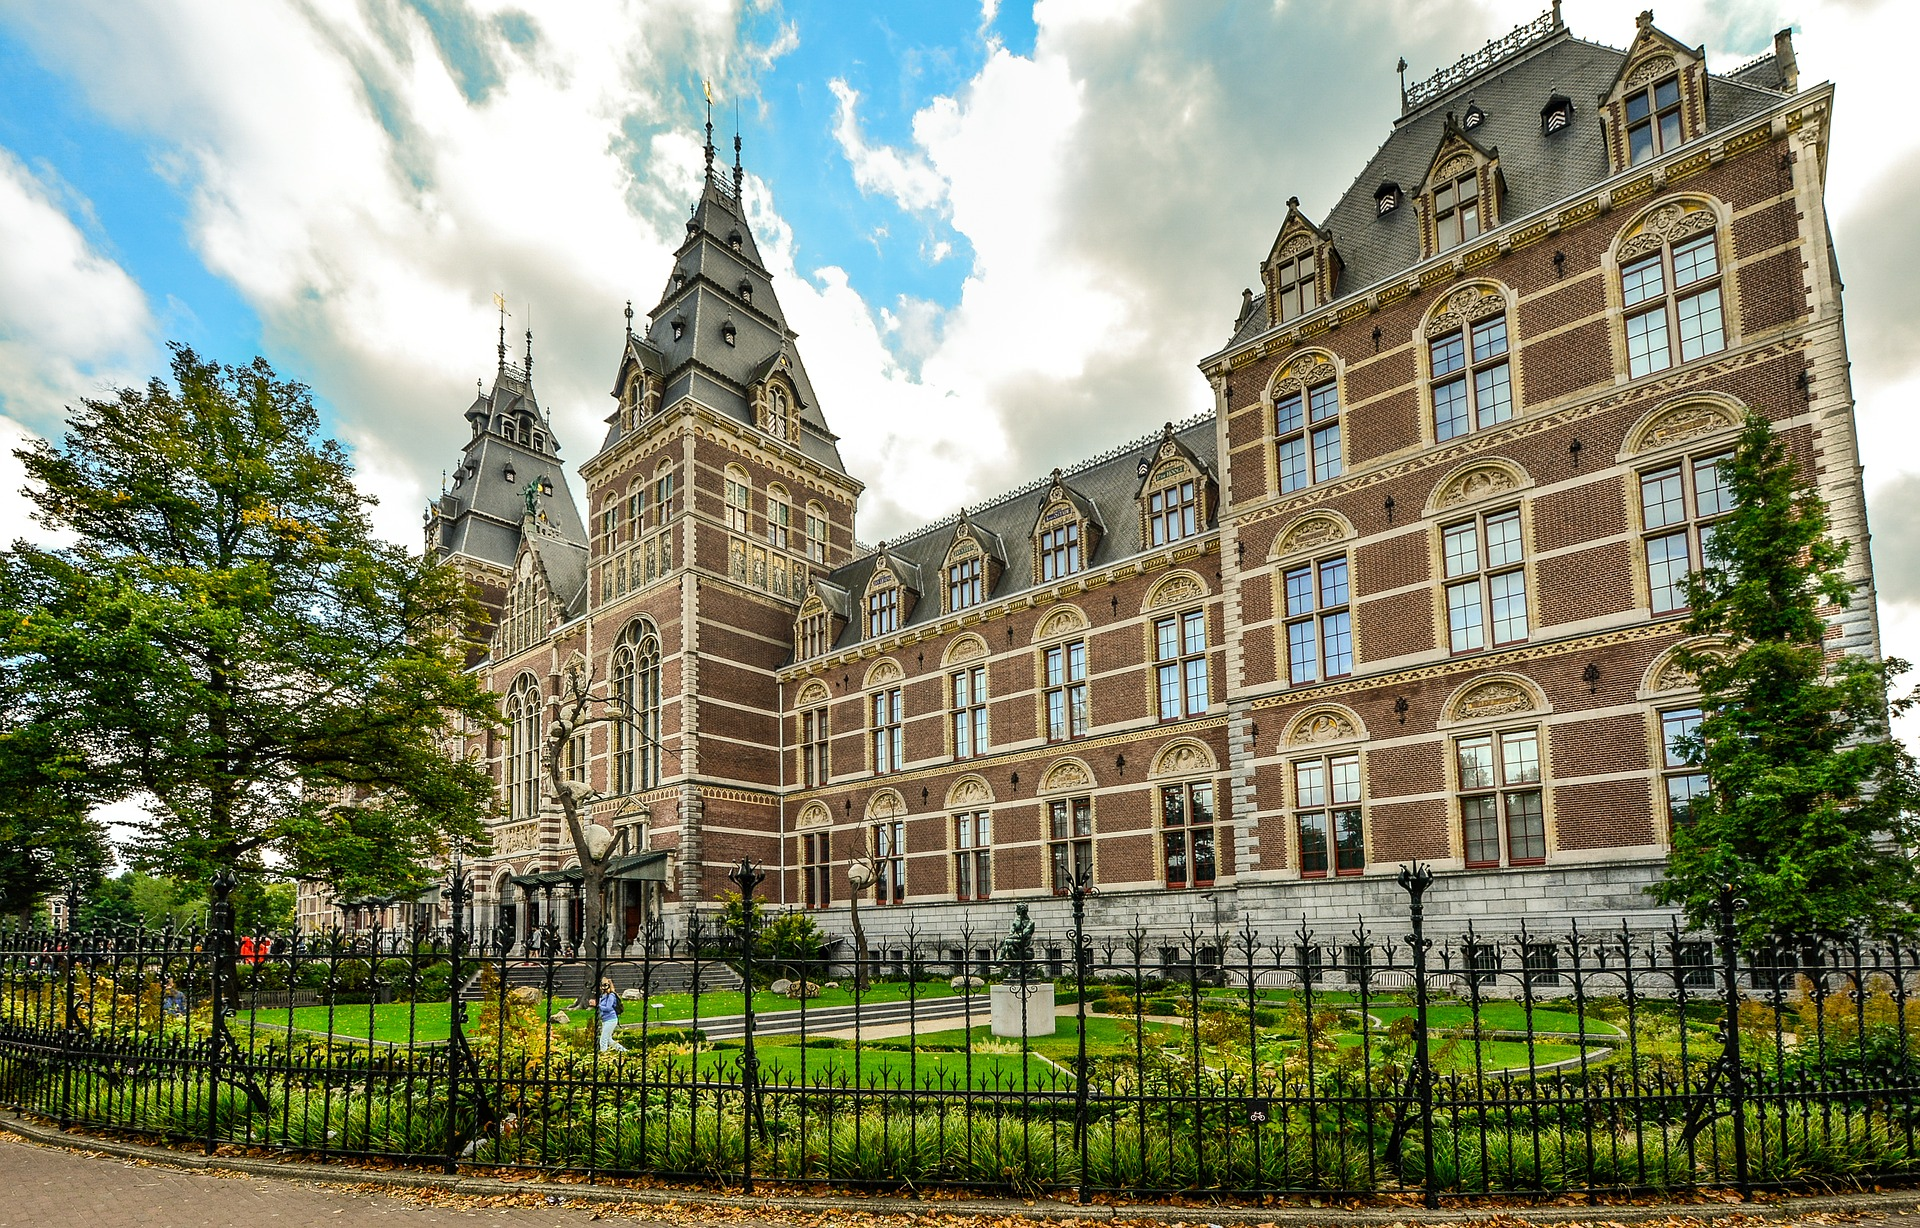 The Rijksmuseum, whose director broadly supports the proposals